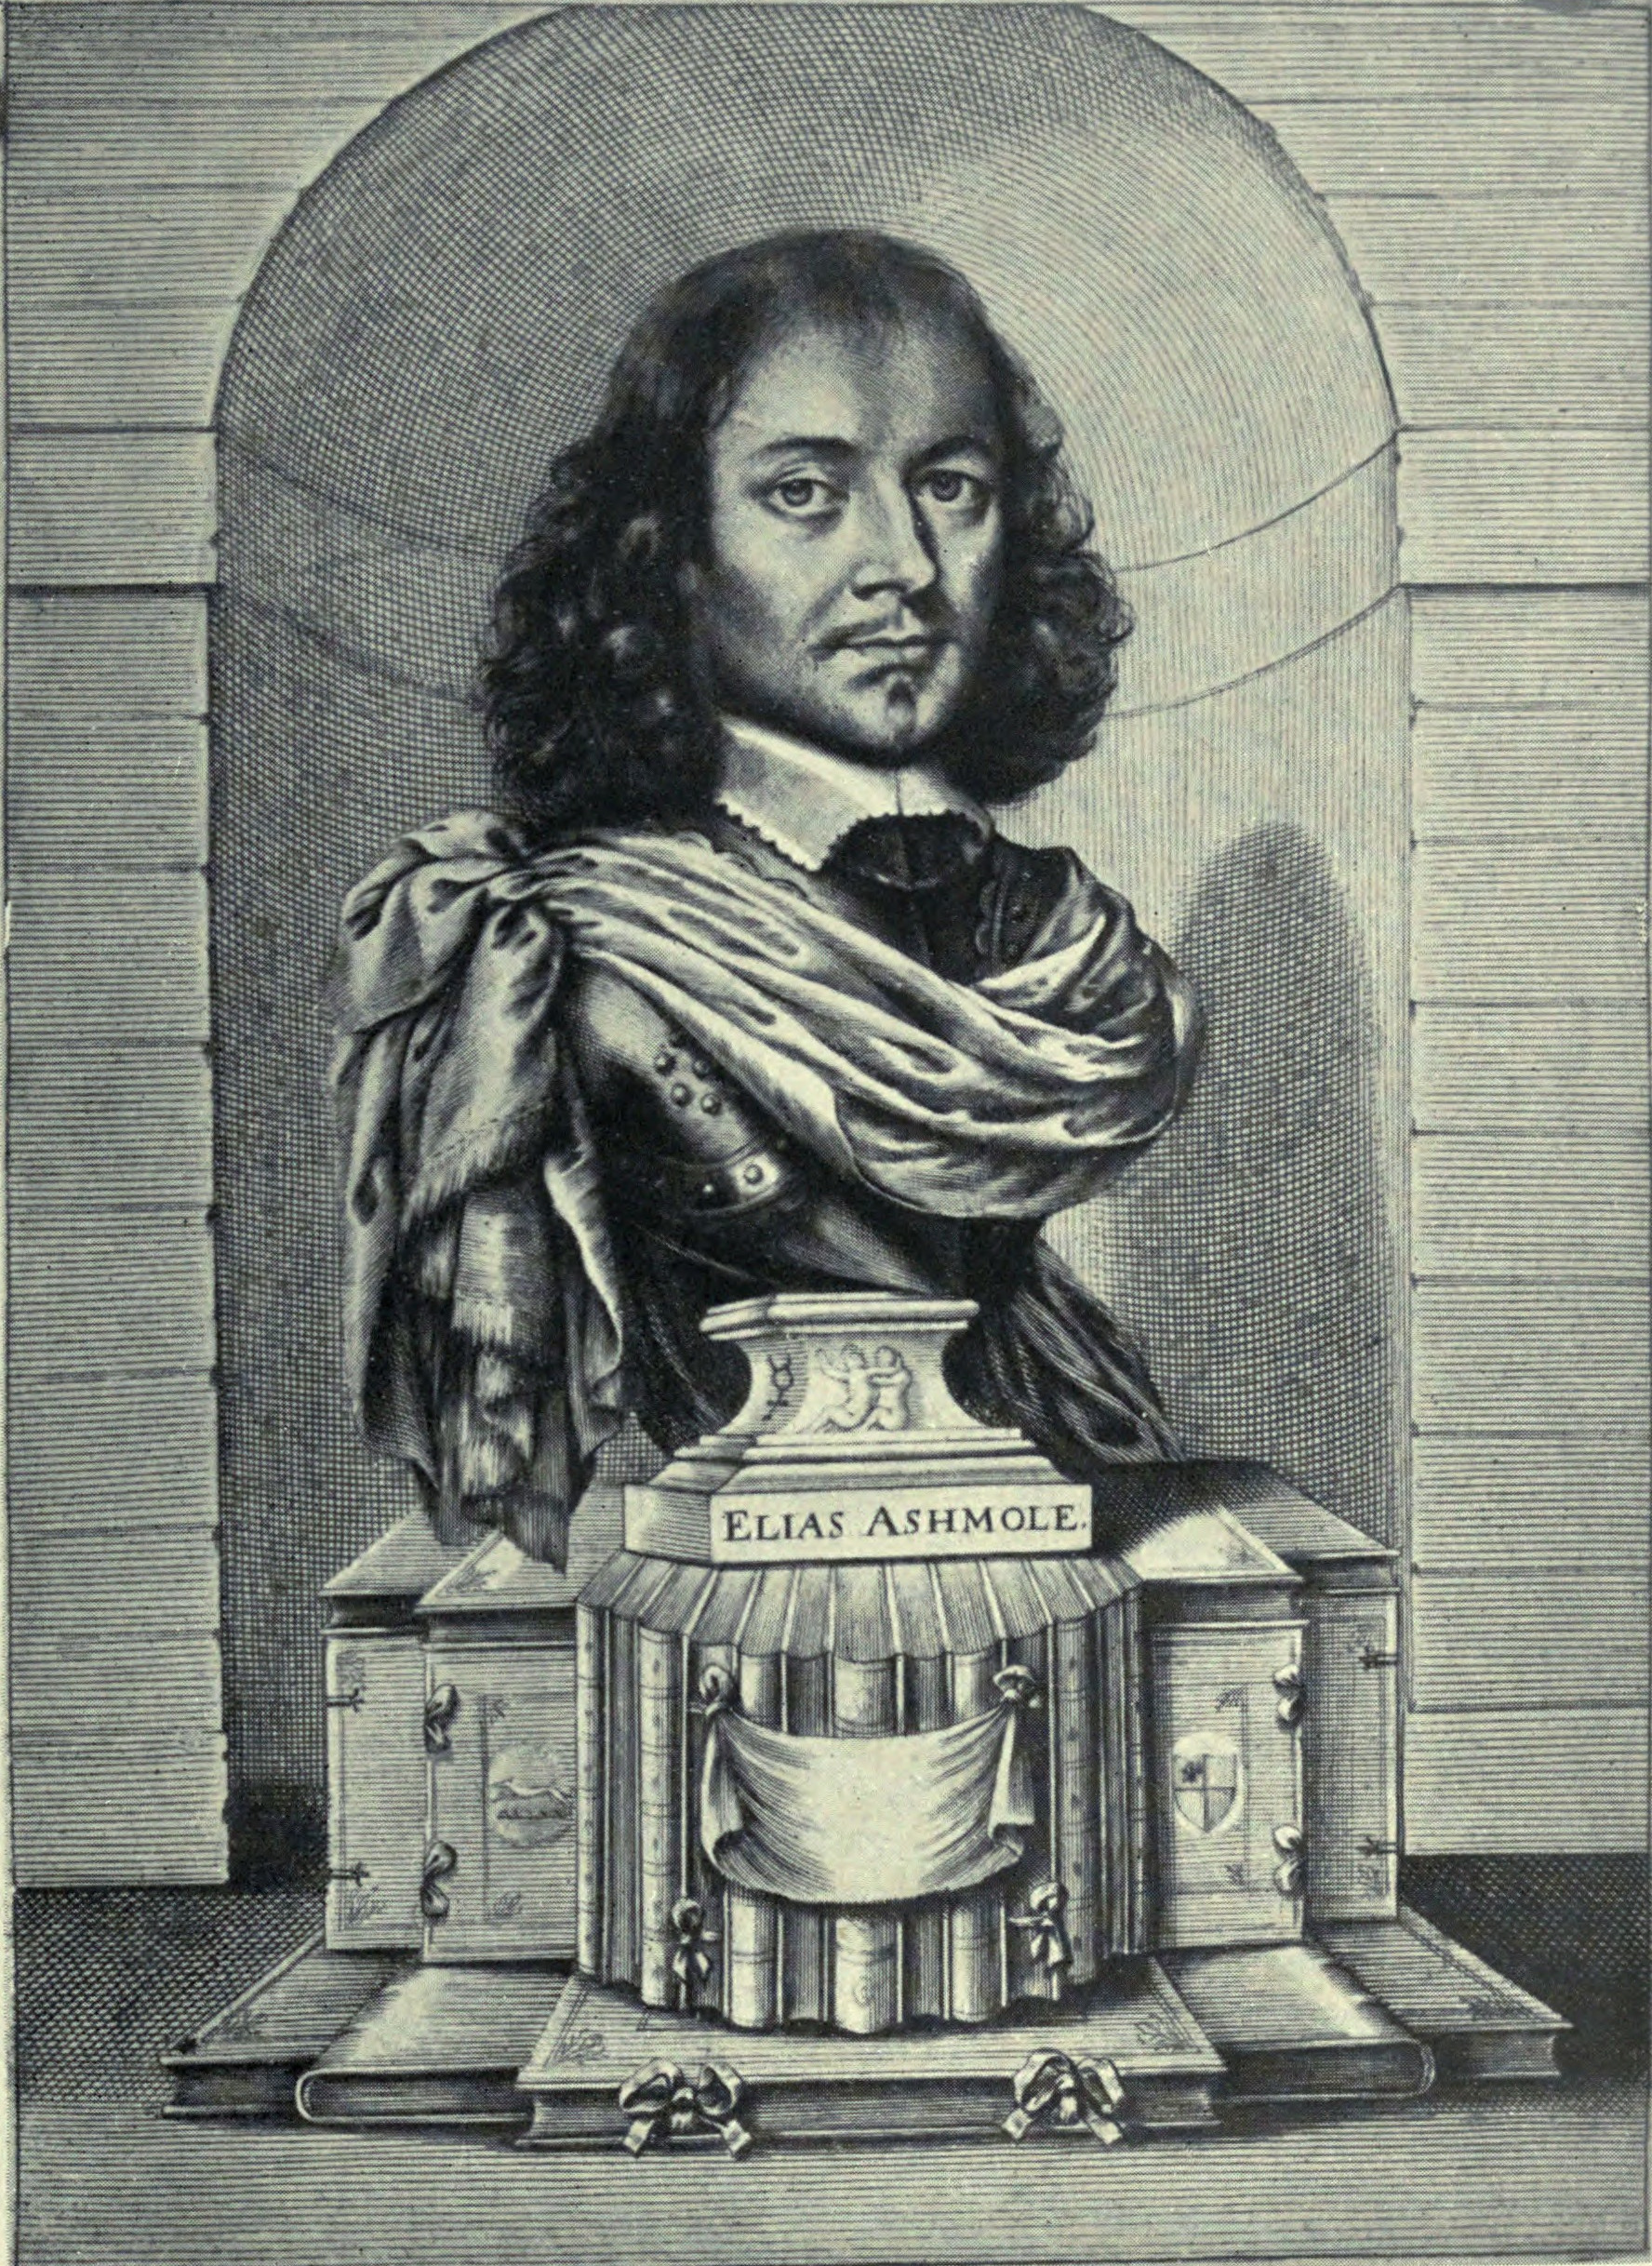 Elias Ashmole, compiler of the Theatrum Chemicum Britannicum